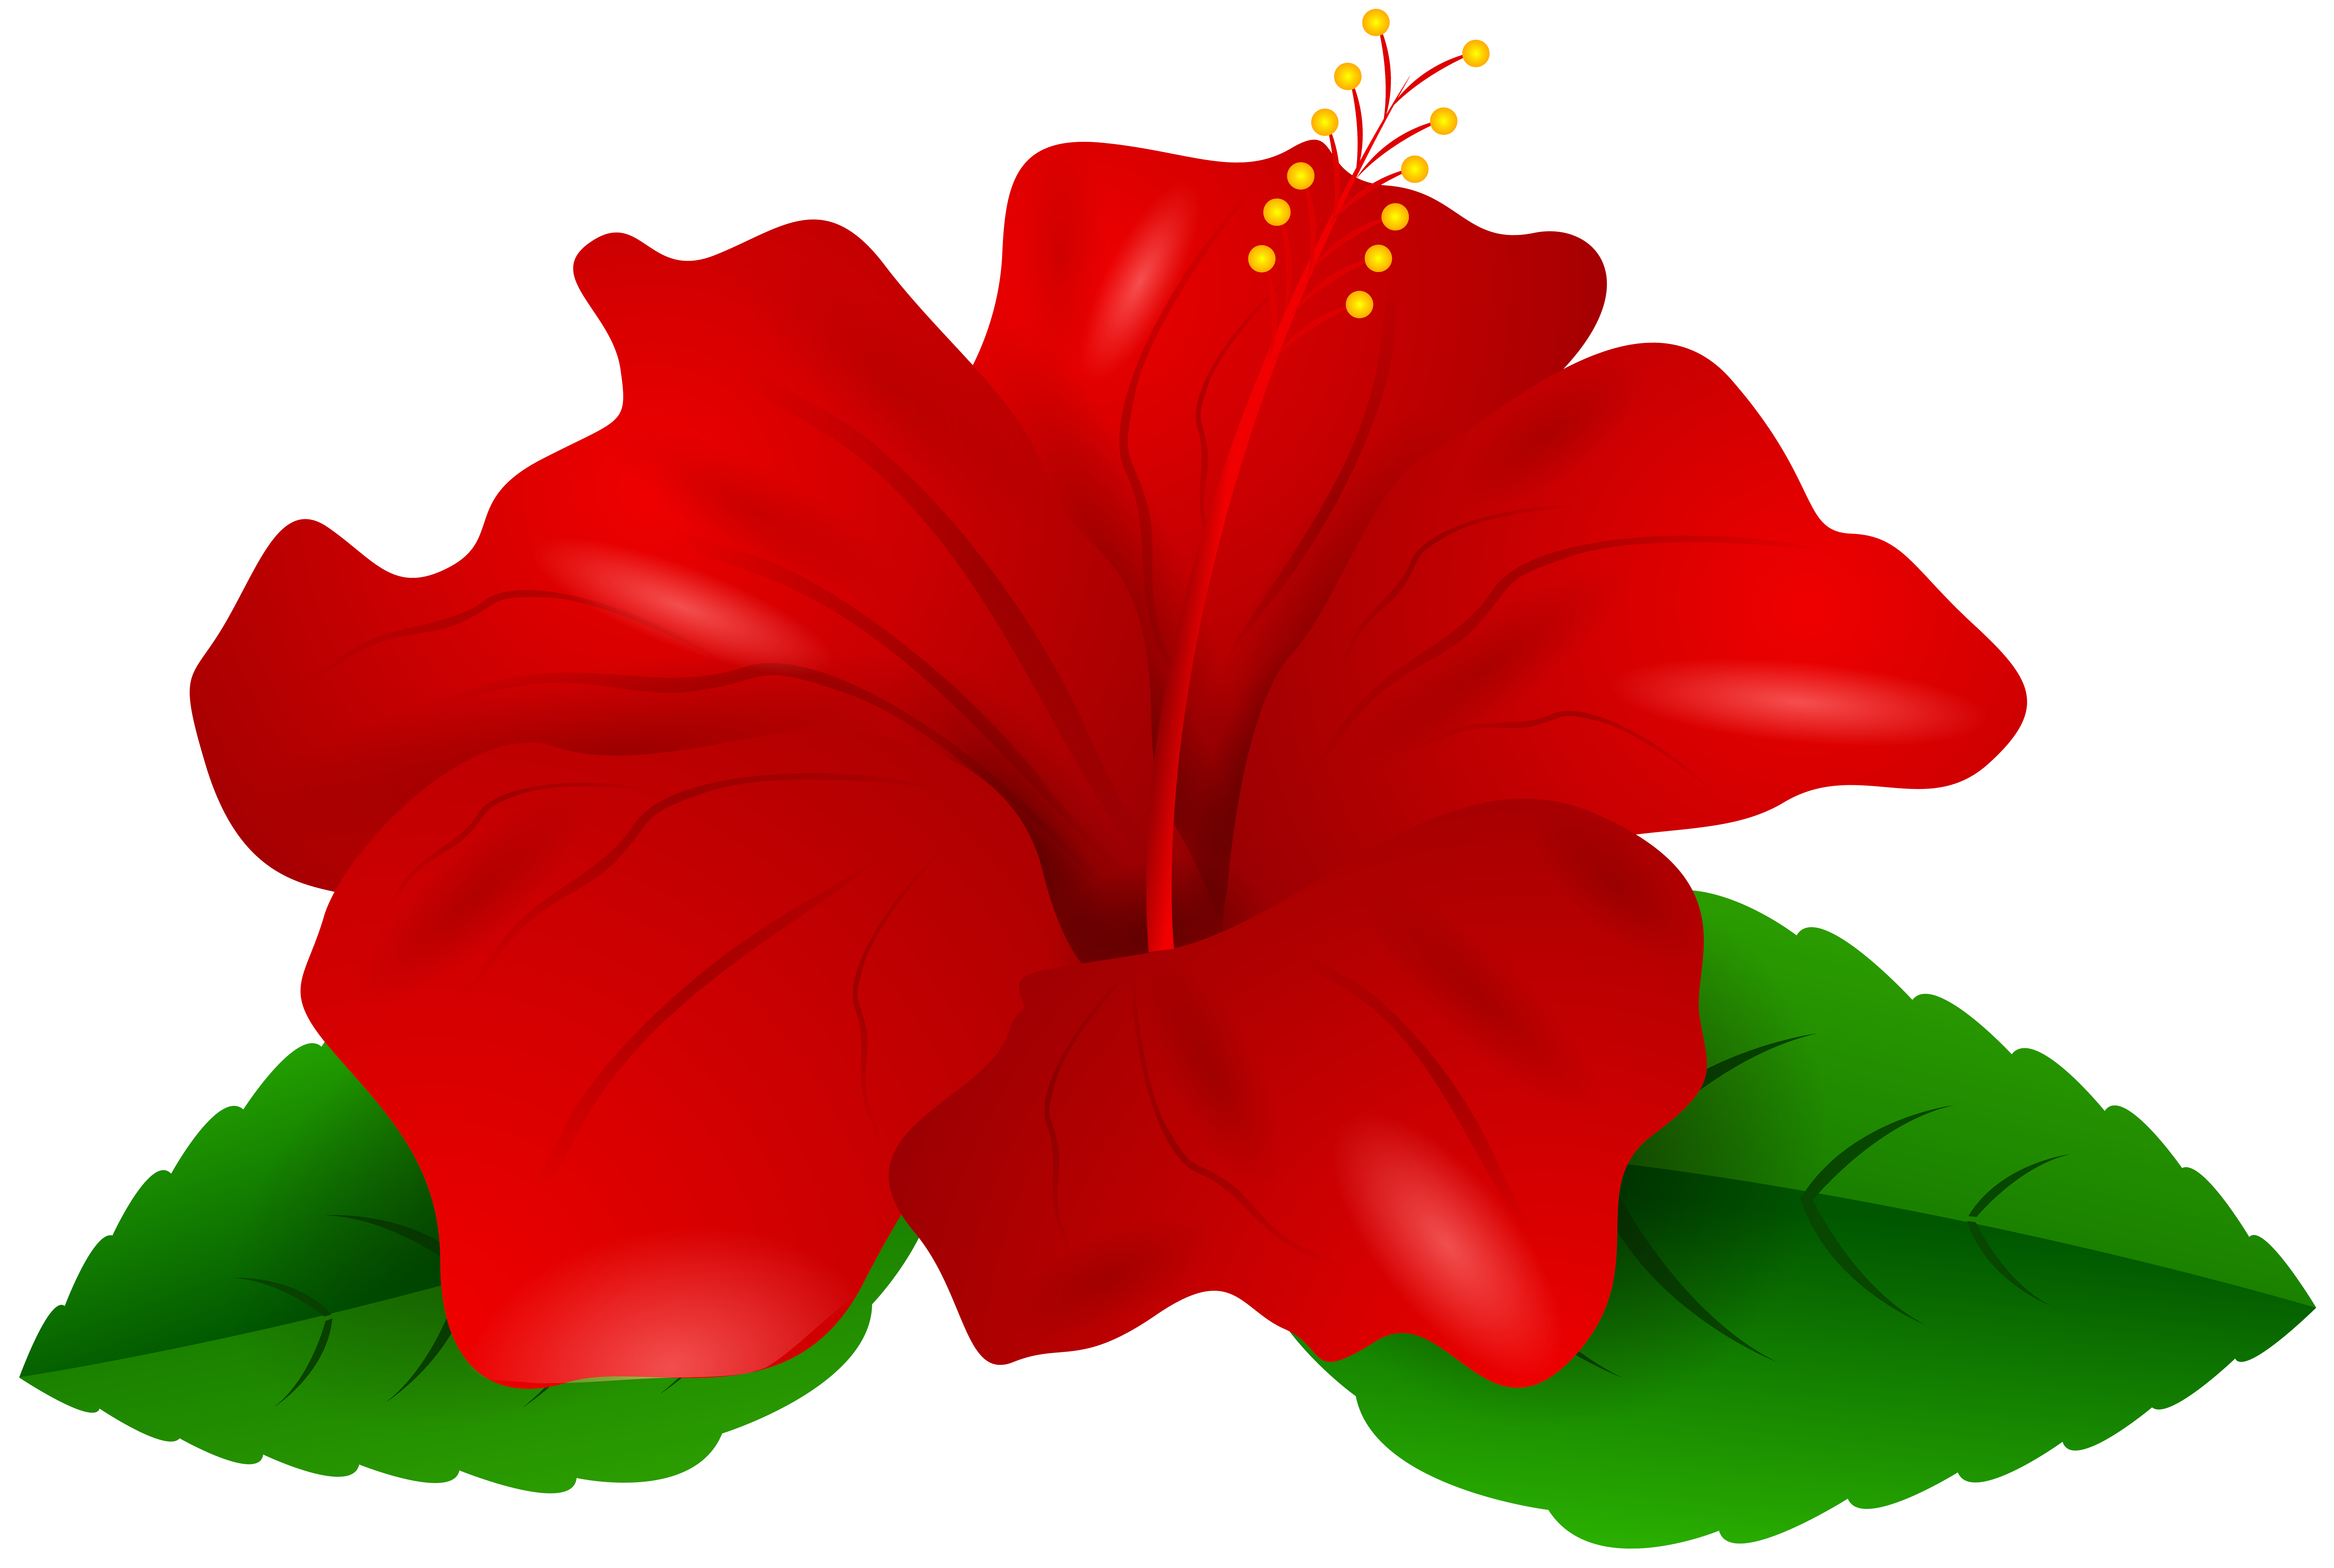 Free hibiscus flower clipart clip freeuse Clipart Hibiscus Flower Image collections - Flower Wallpaper HD clip freeuse